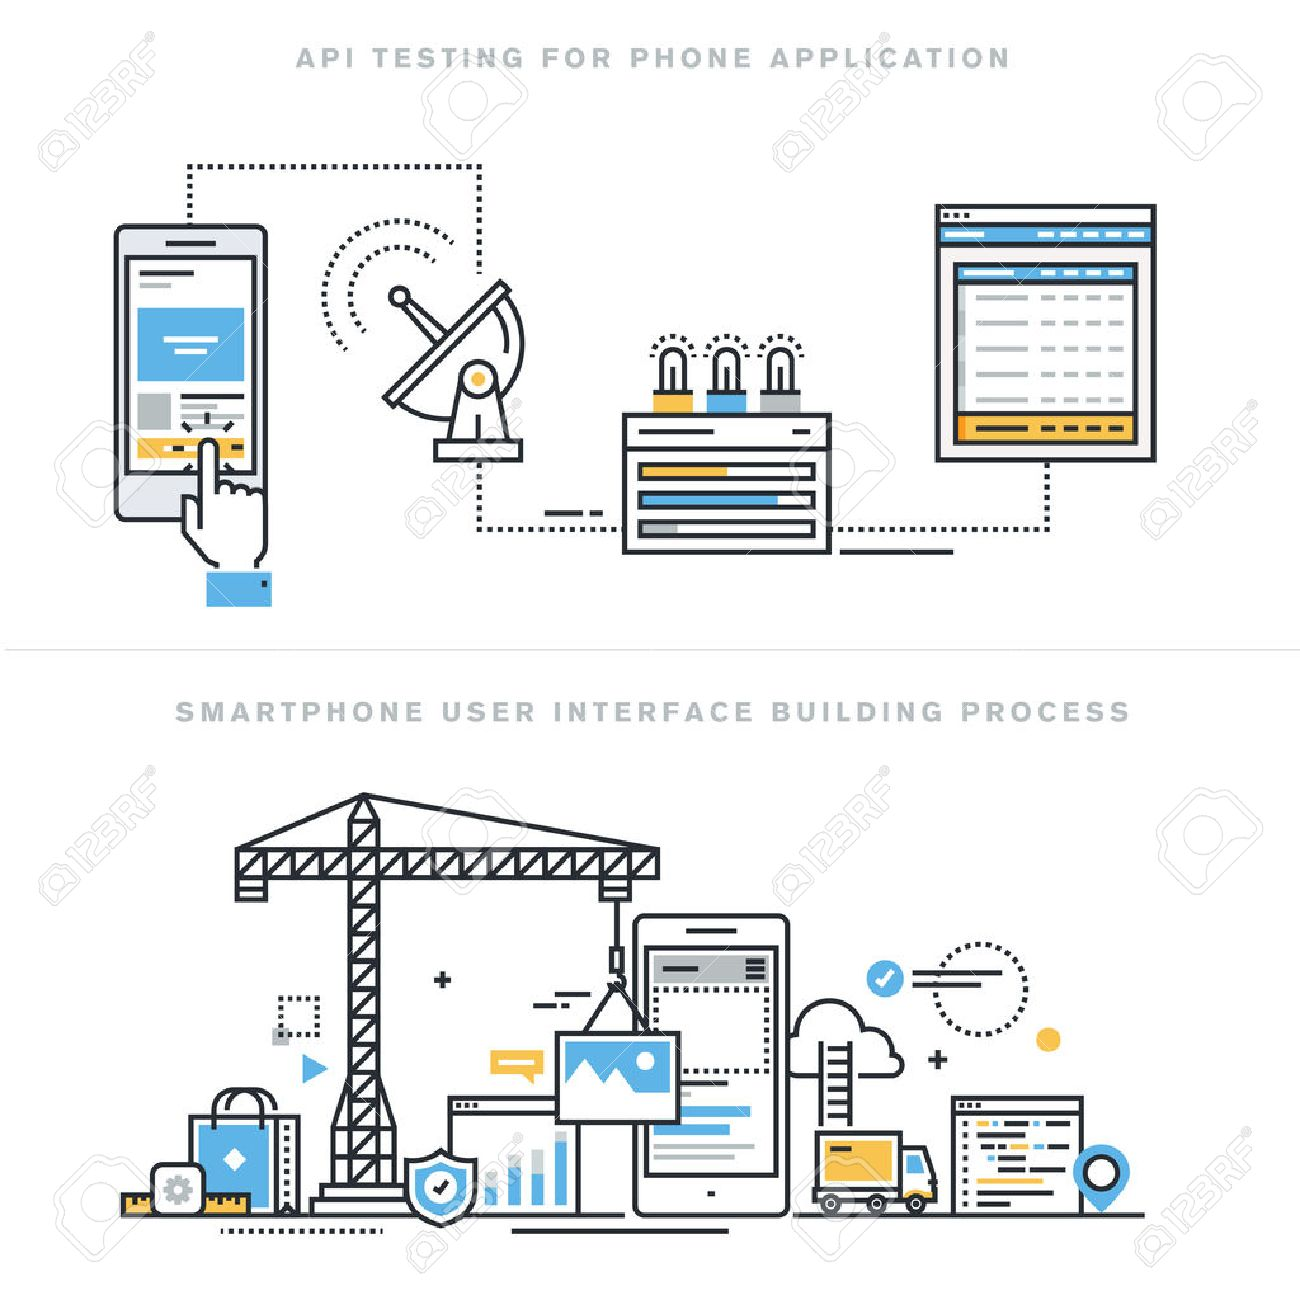 Flat line design vector illustration concepts for software API prototyping and testing for smartphone, app develop with API interface, smartphone interface building process, for website banner. Stock Vector - 47546448